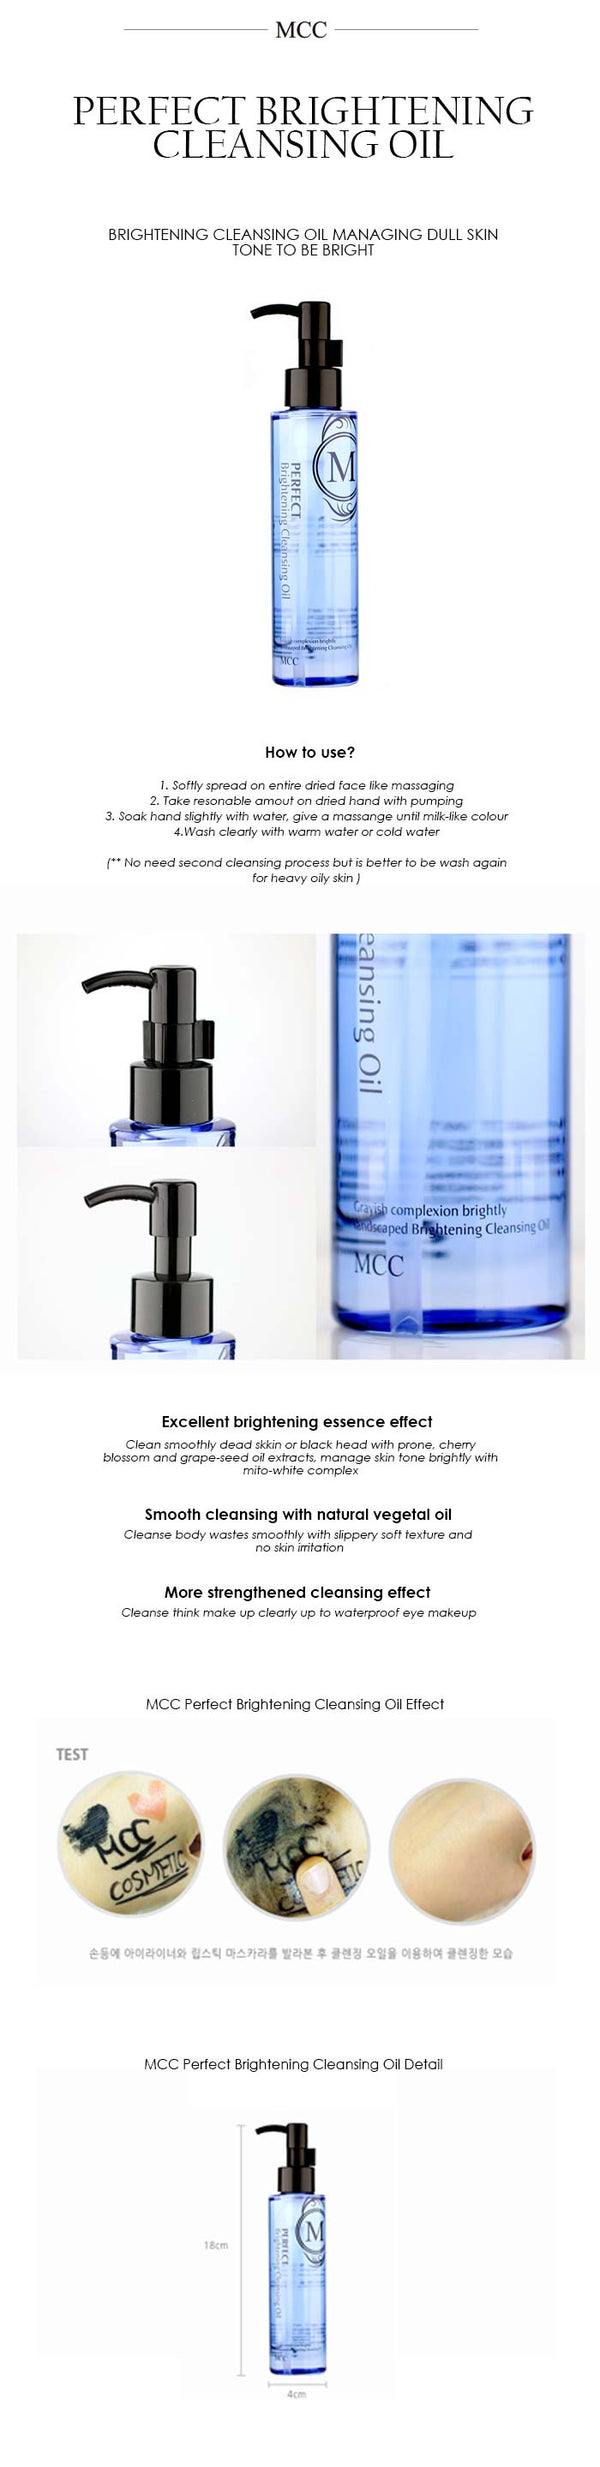 MCC PERFECT BRIGHTENING CLEANSING OIL